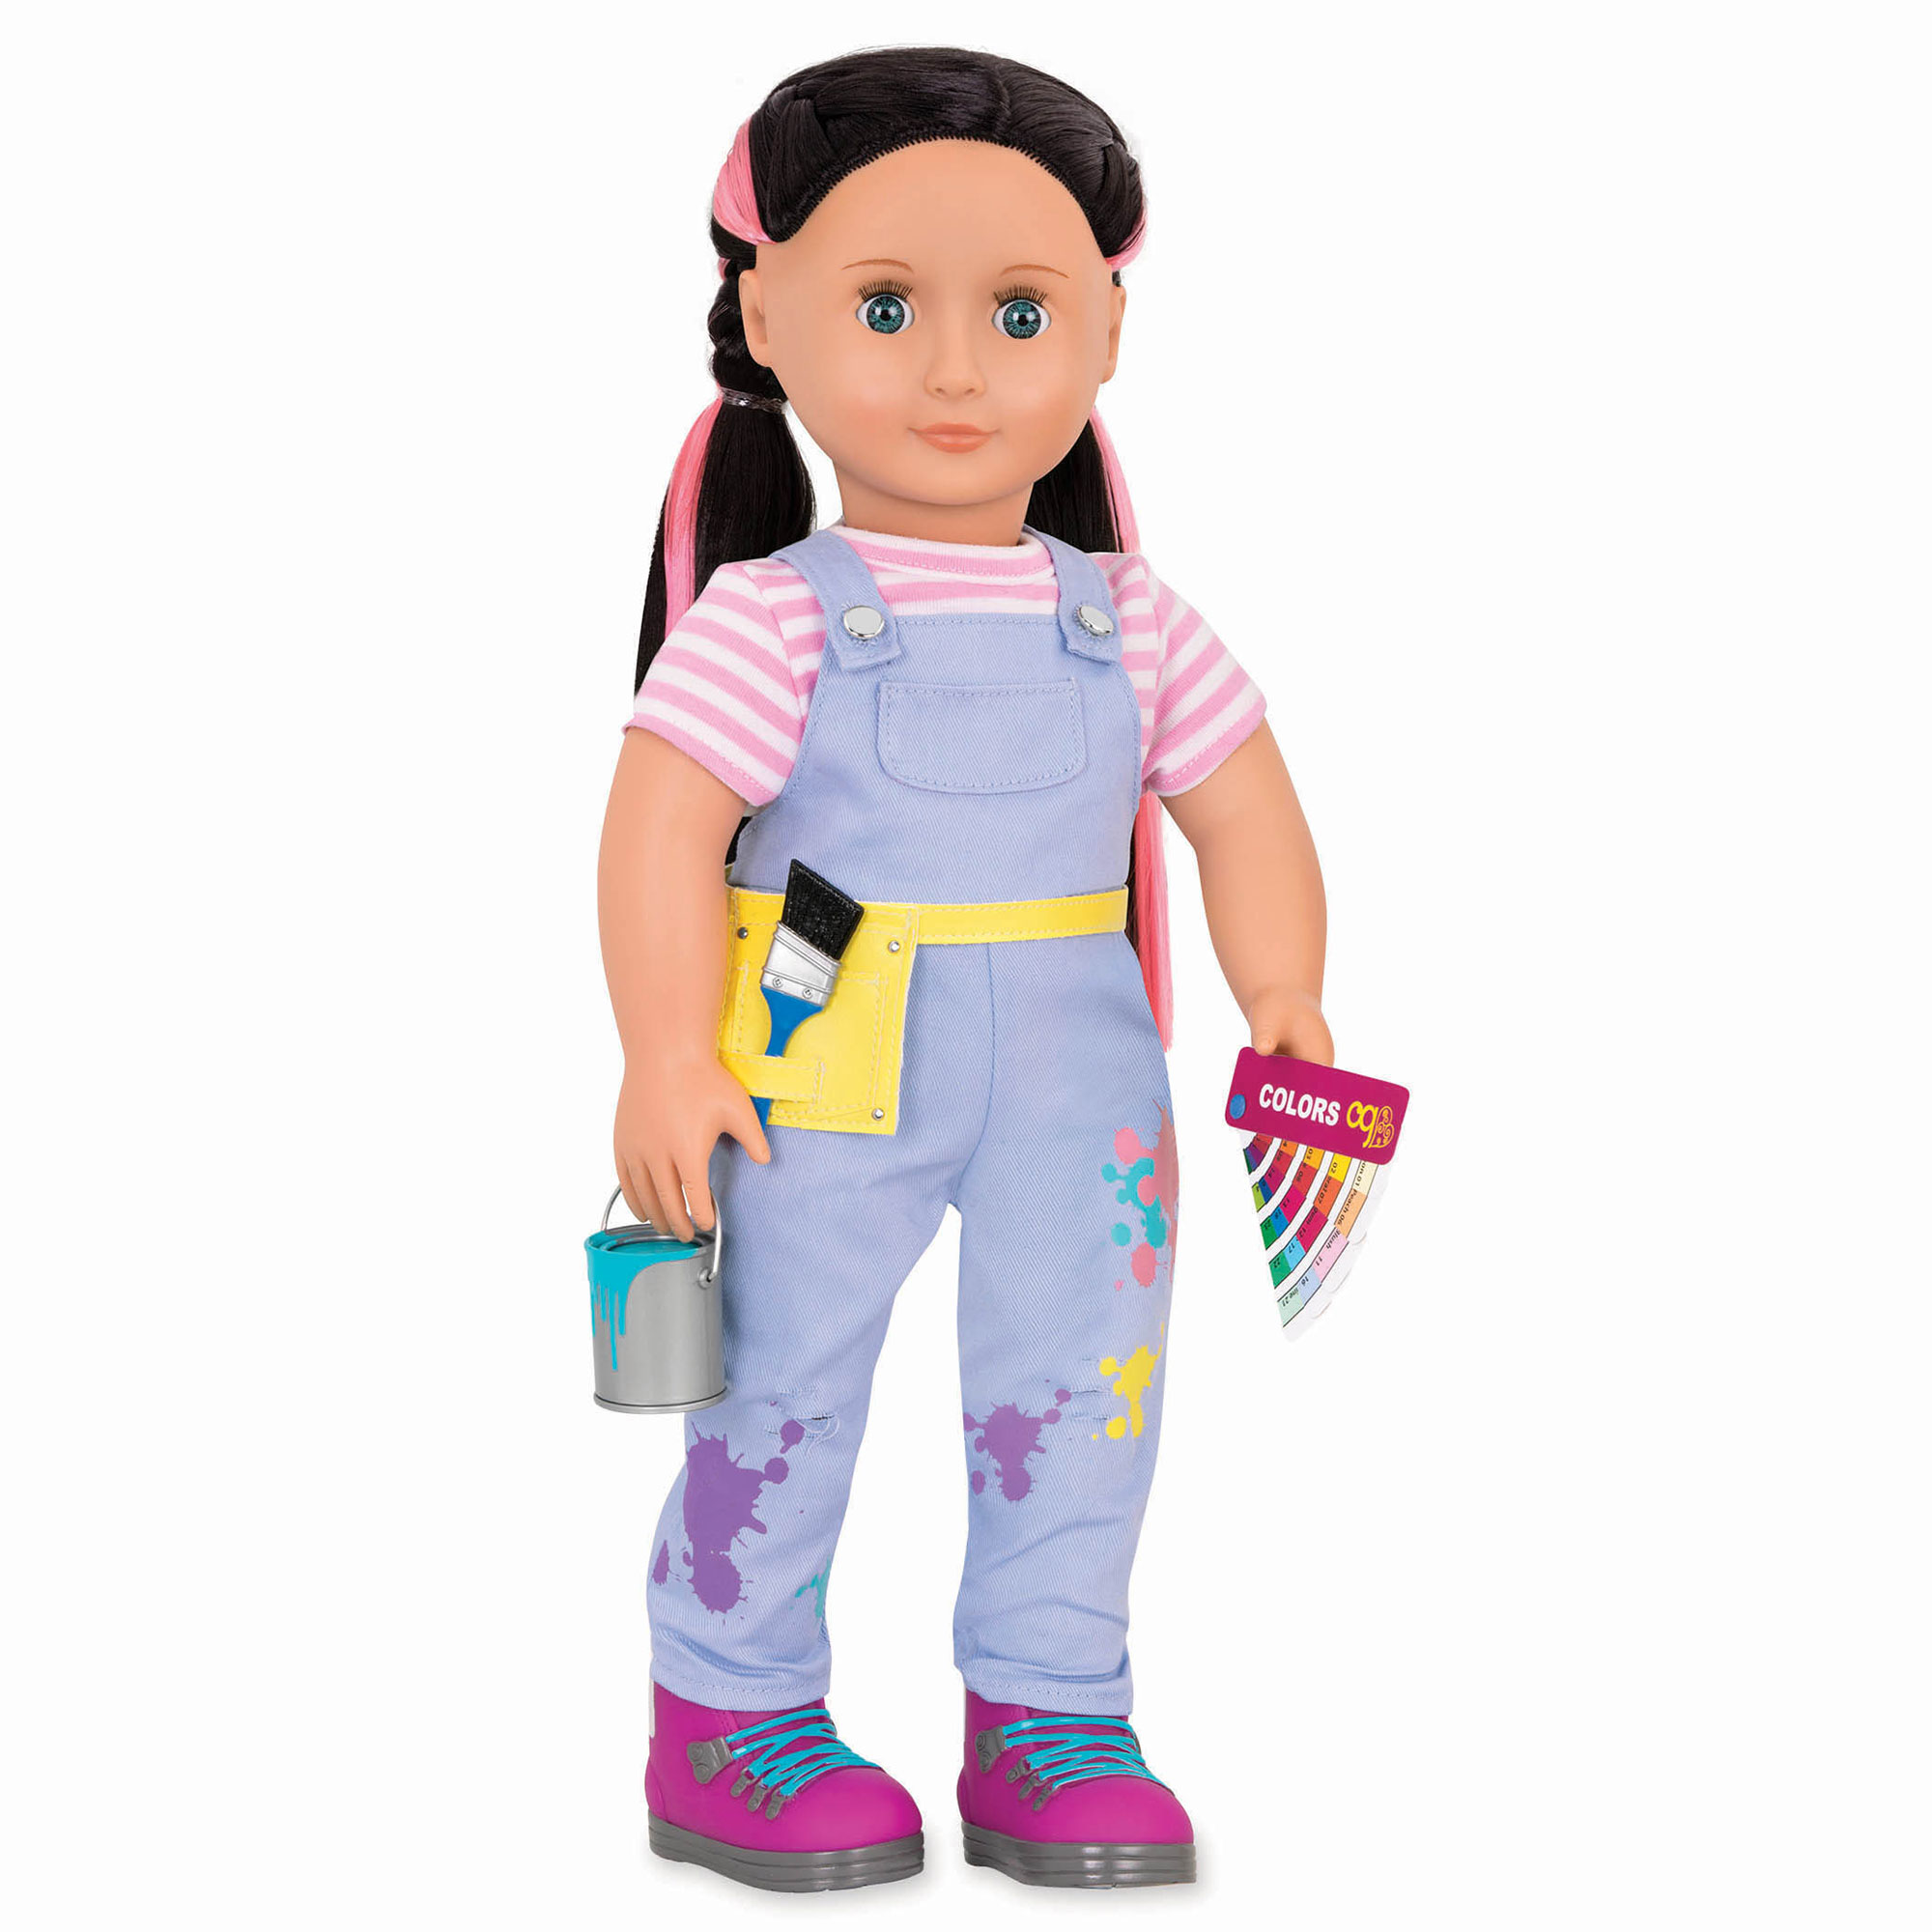 Our Generation Ananda Decorator Doll